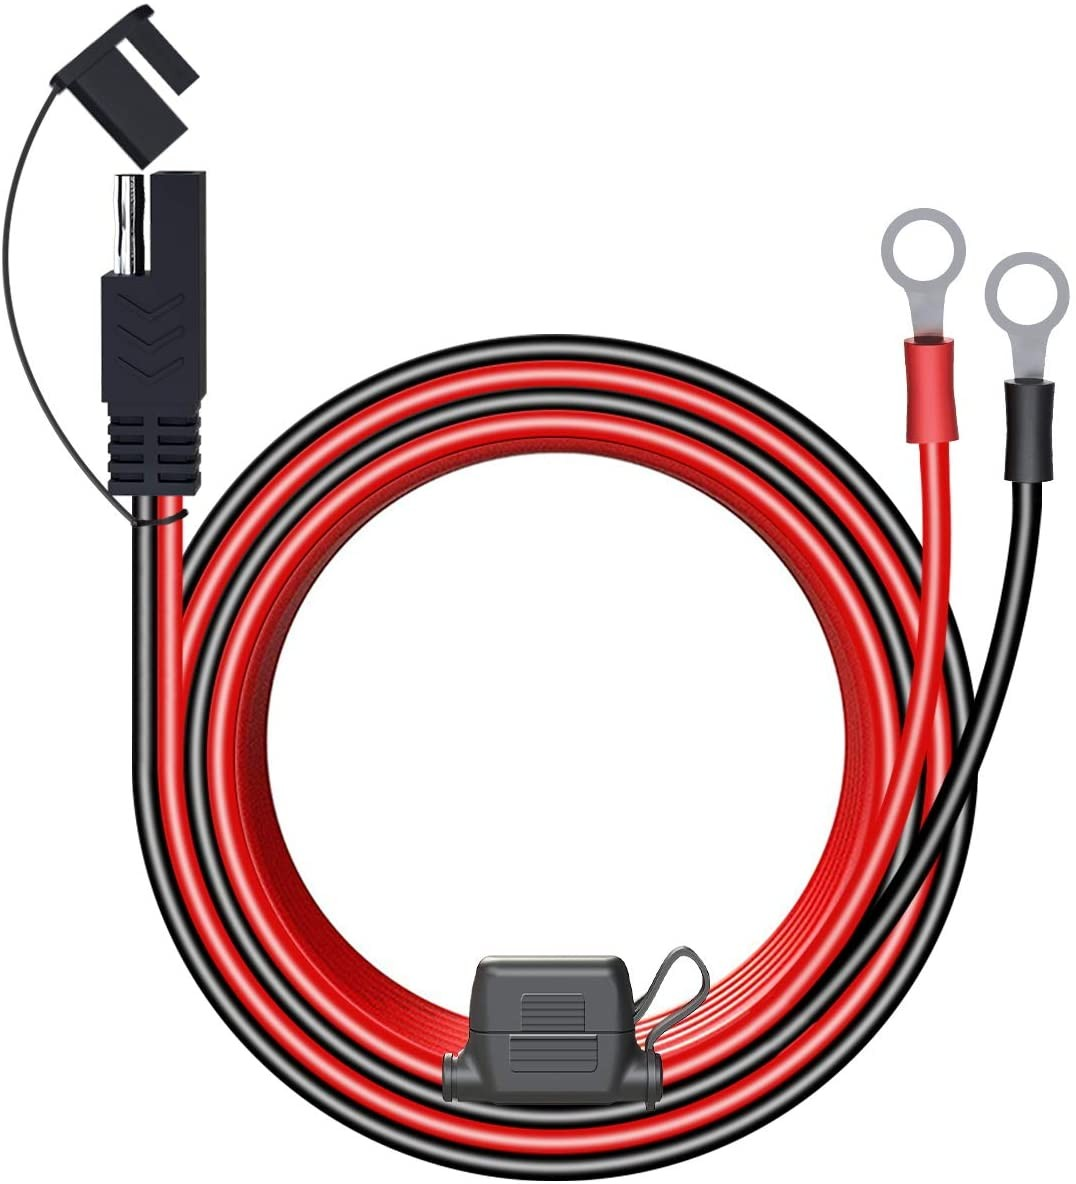 LST 4FT 12V Ring Connecters Extension Cord Cable